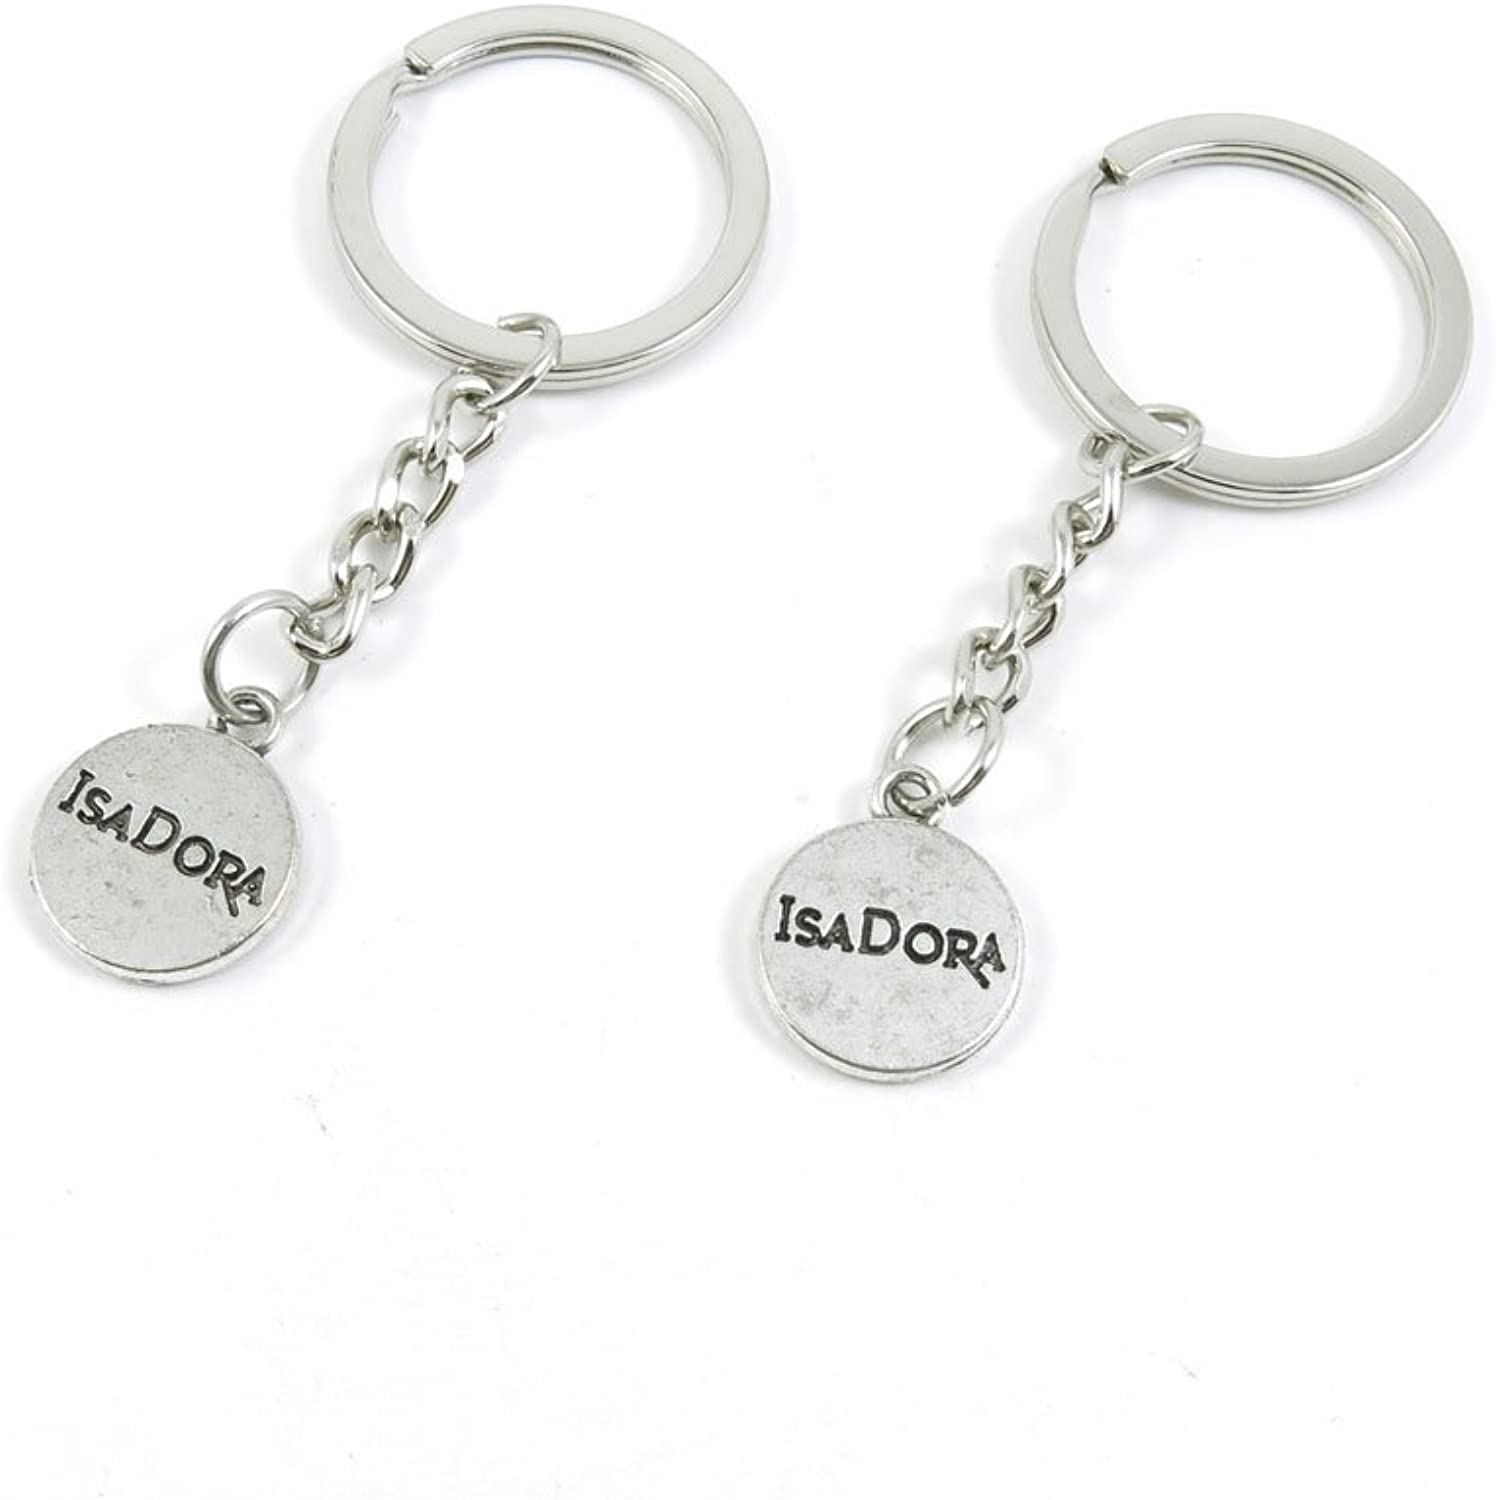 100 Pieces Keychain Keyring Door Car Key Chain Ring Tag Charms Bulk Supply Jewelry Making Clasp Findings U4XE4X Isadora